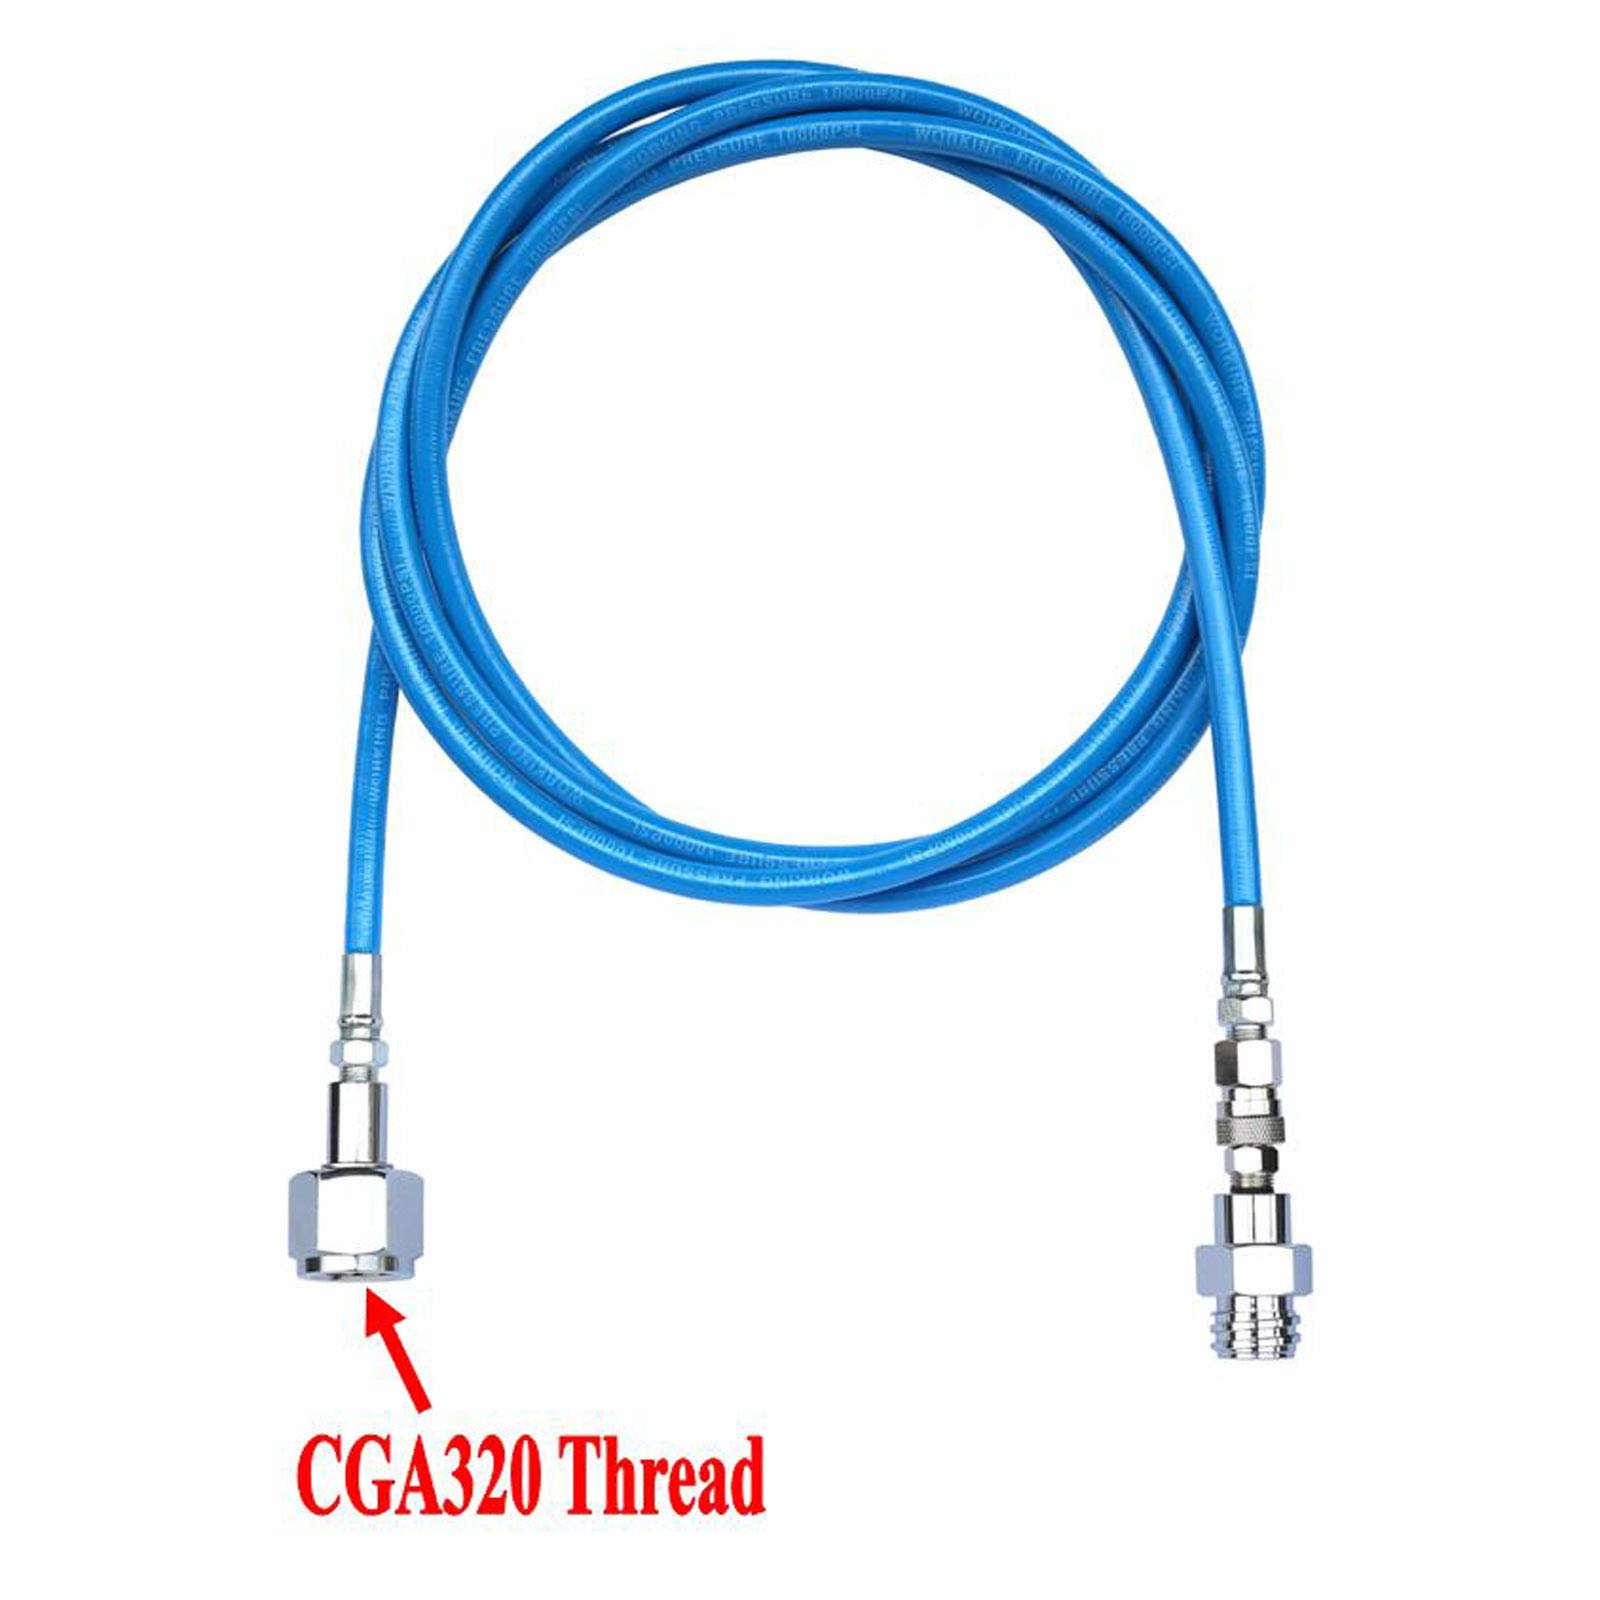 CO2 Soda Club To External CGA320 Tank Direct Adapter And Hose Kit (100'' Blue Hose) by GFSP